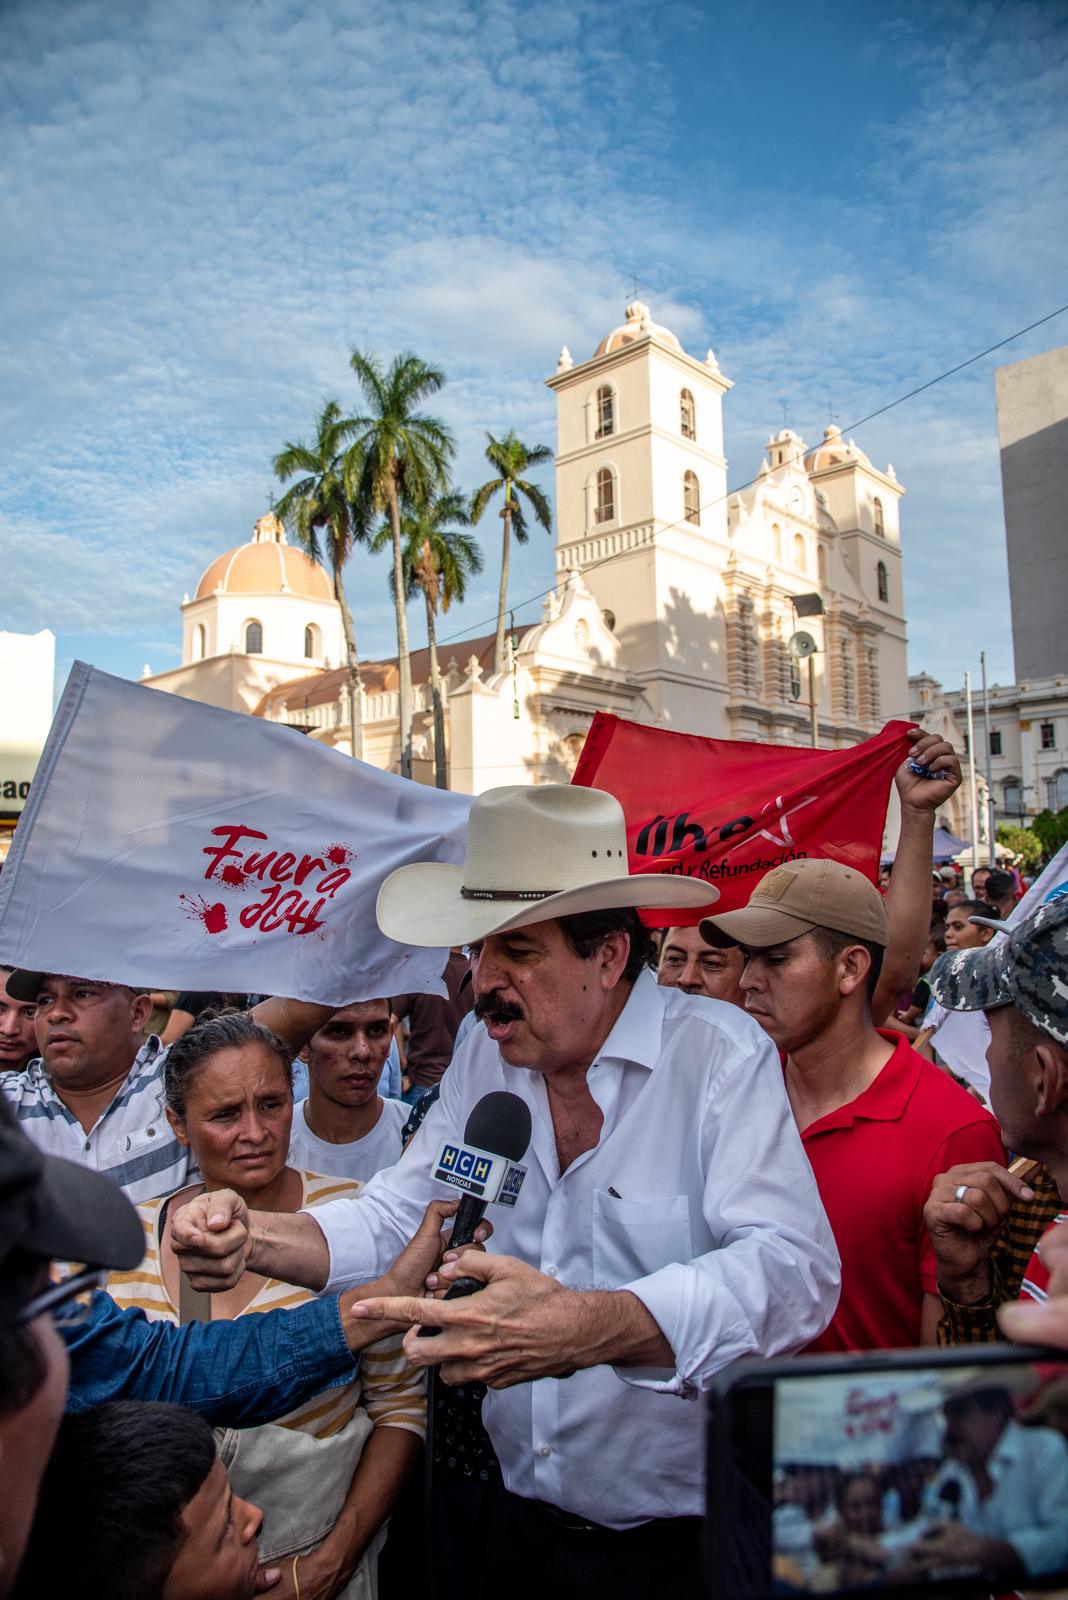 During the 10th anniversary of the 2009 coup d'etat in Honduras, the ex-president--Manuel Zelaya--who was unjustly overthrown with backing from the US and Narco trafficking elites, returned to the capital city to join the people in an odd celebration by the Liberal Party.